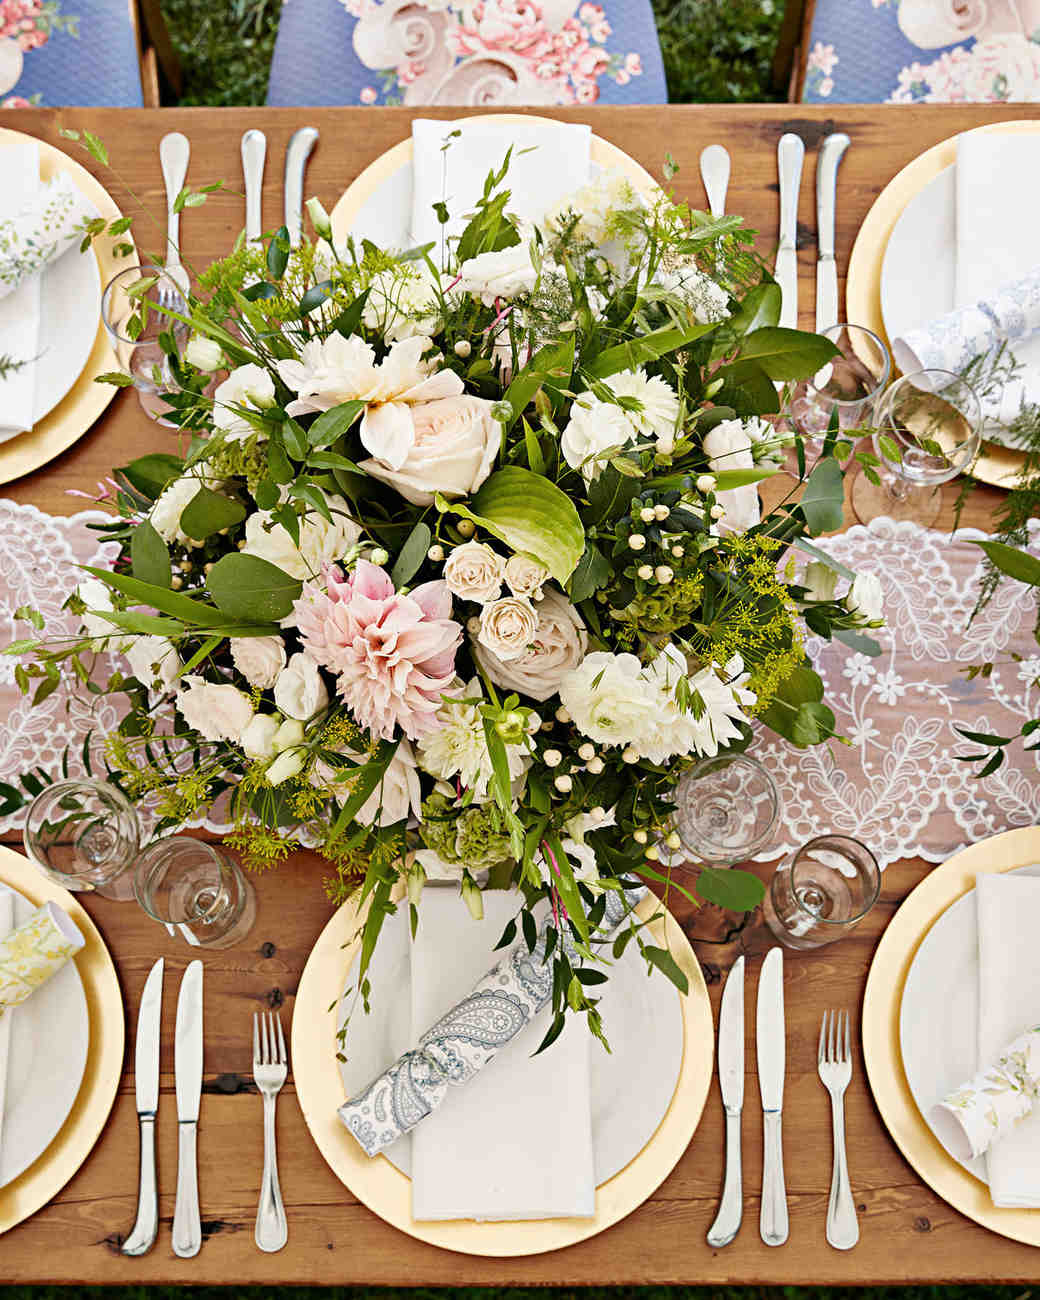 Image courtesy of Martha Stewart Weddings